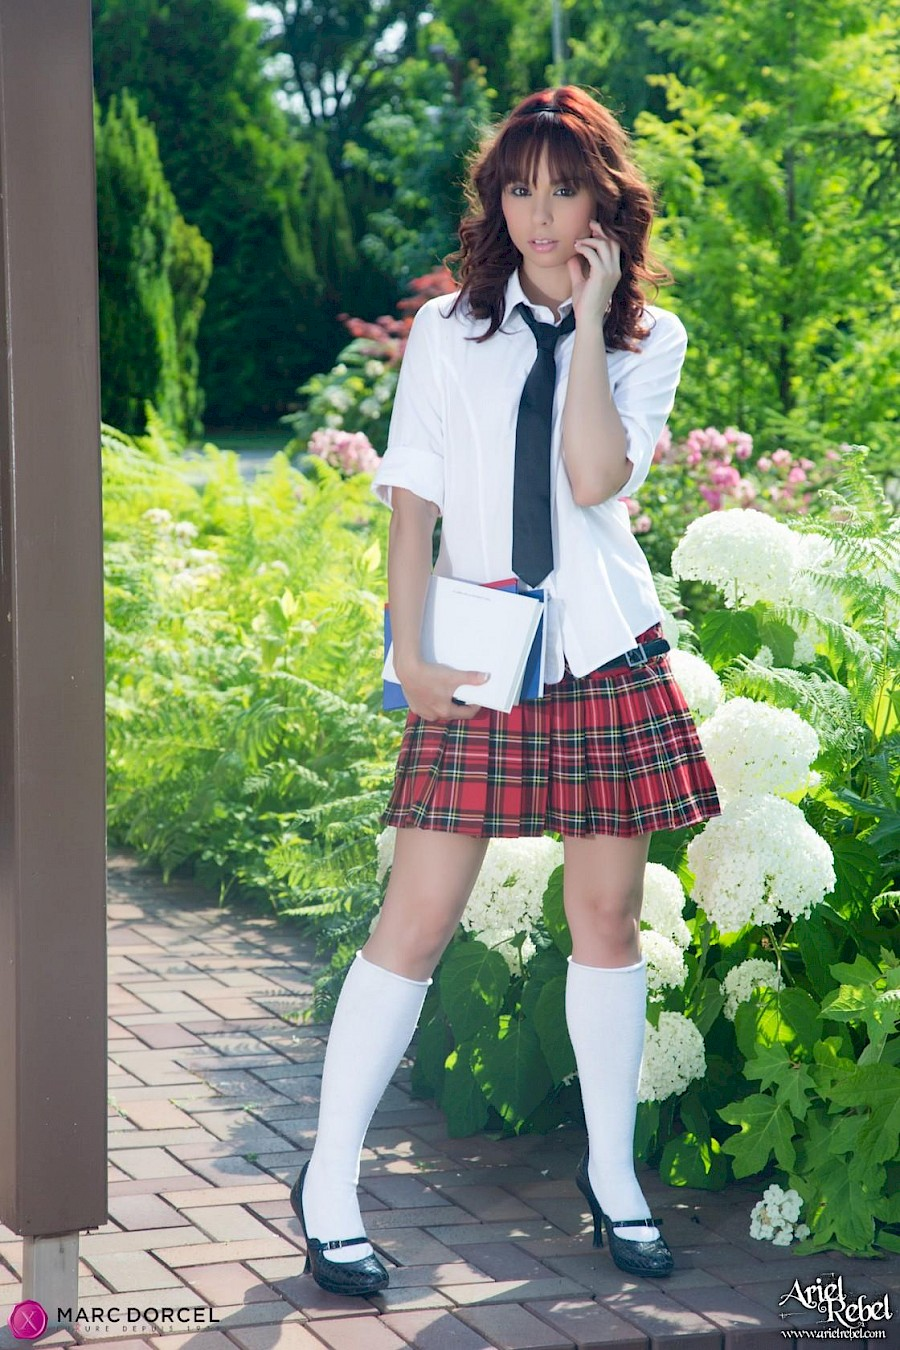 Pretty And Cute Schoolgirl Ariel Rebel Shows You Her Pussy Outside